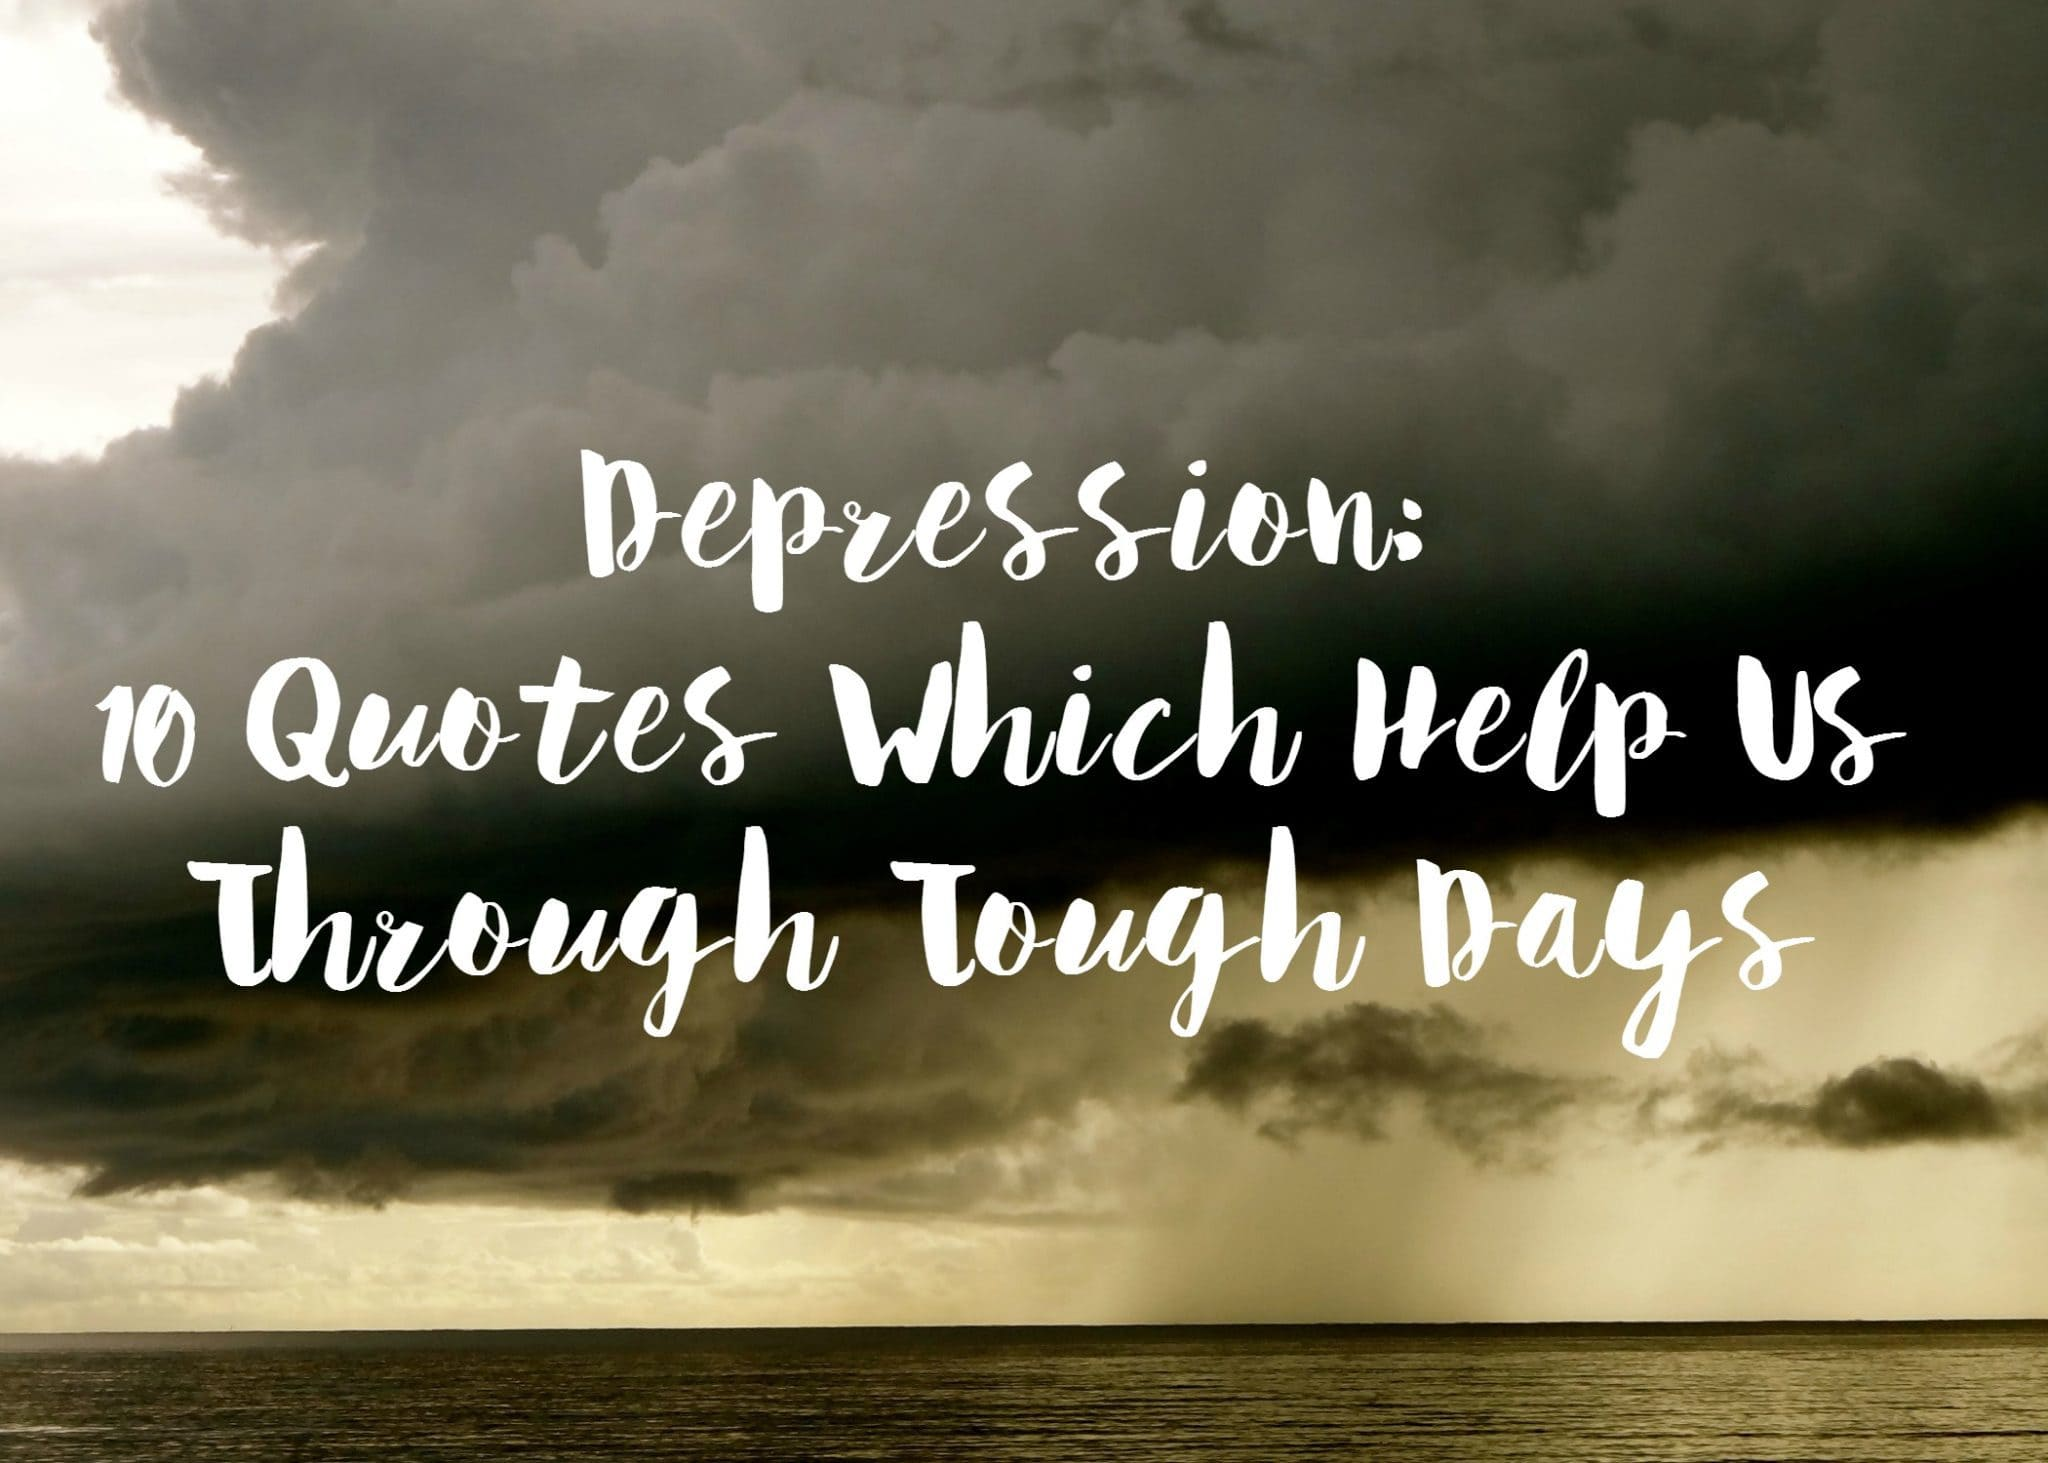 Quotes To Help Depression Depression 10 Quotes Which Help Us Through Tough Days